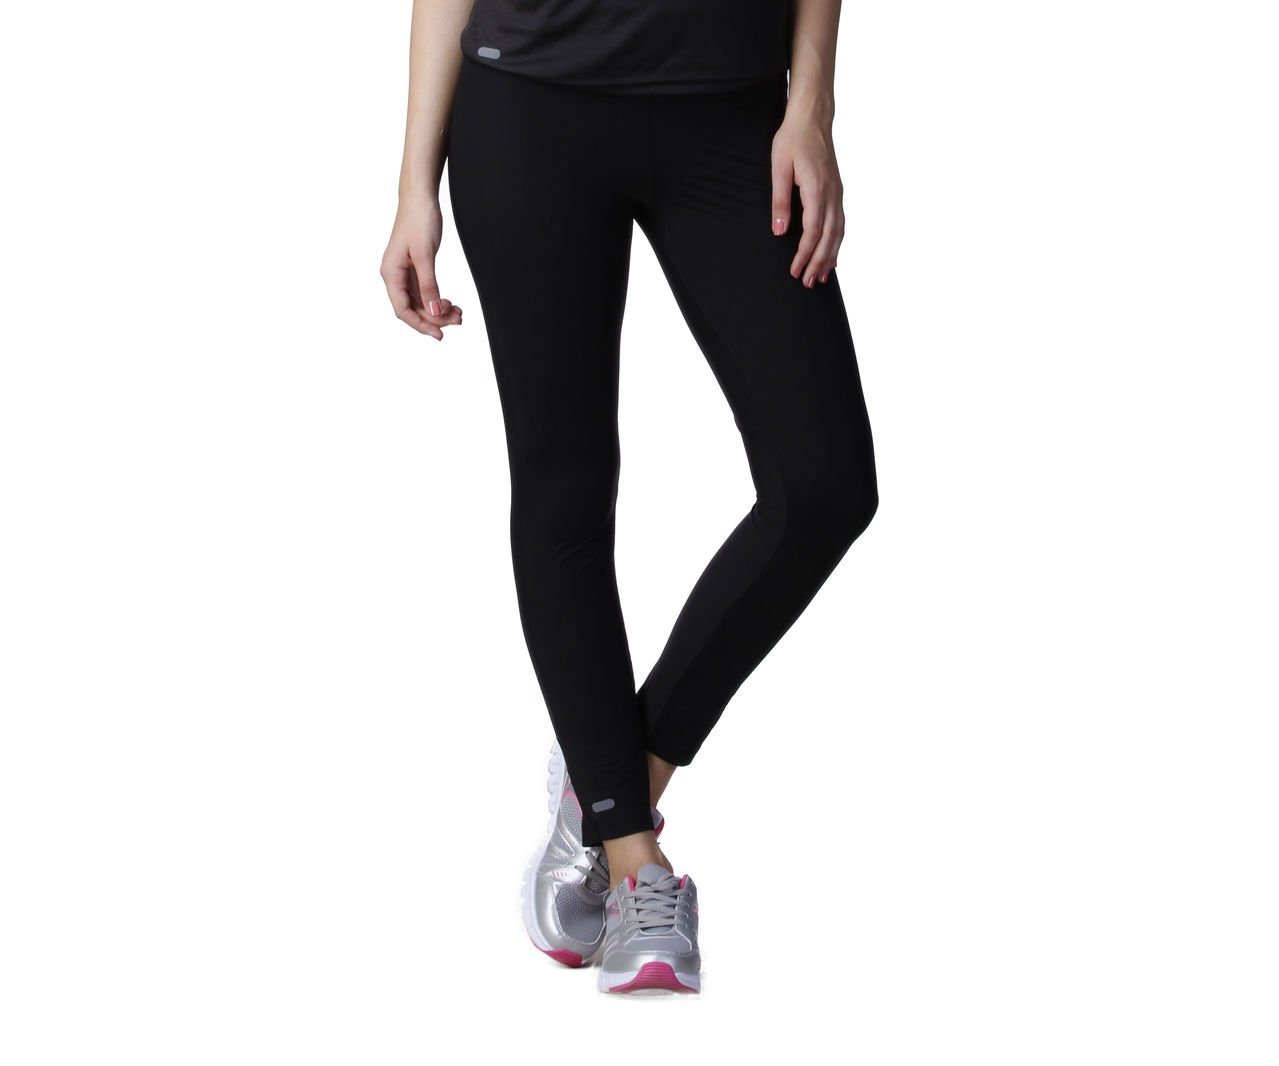 88fa5b5b96ea88 Buy WOMENS SPORTS LYCRA GYM LEGGING FOR GYM & FITNESS (BLACK-XXL) Online at  Low Prices in India - Amazon.in